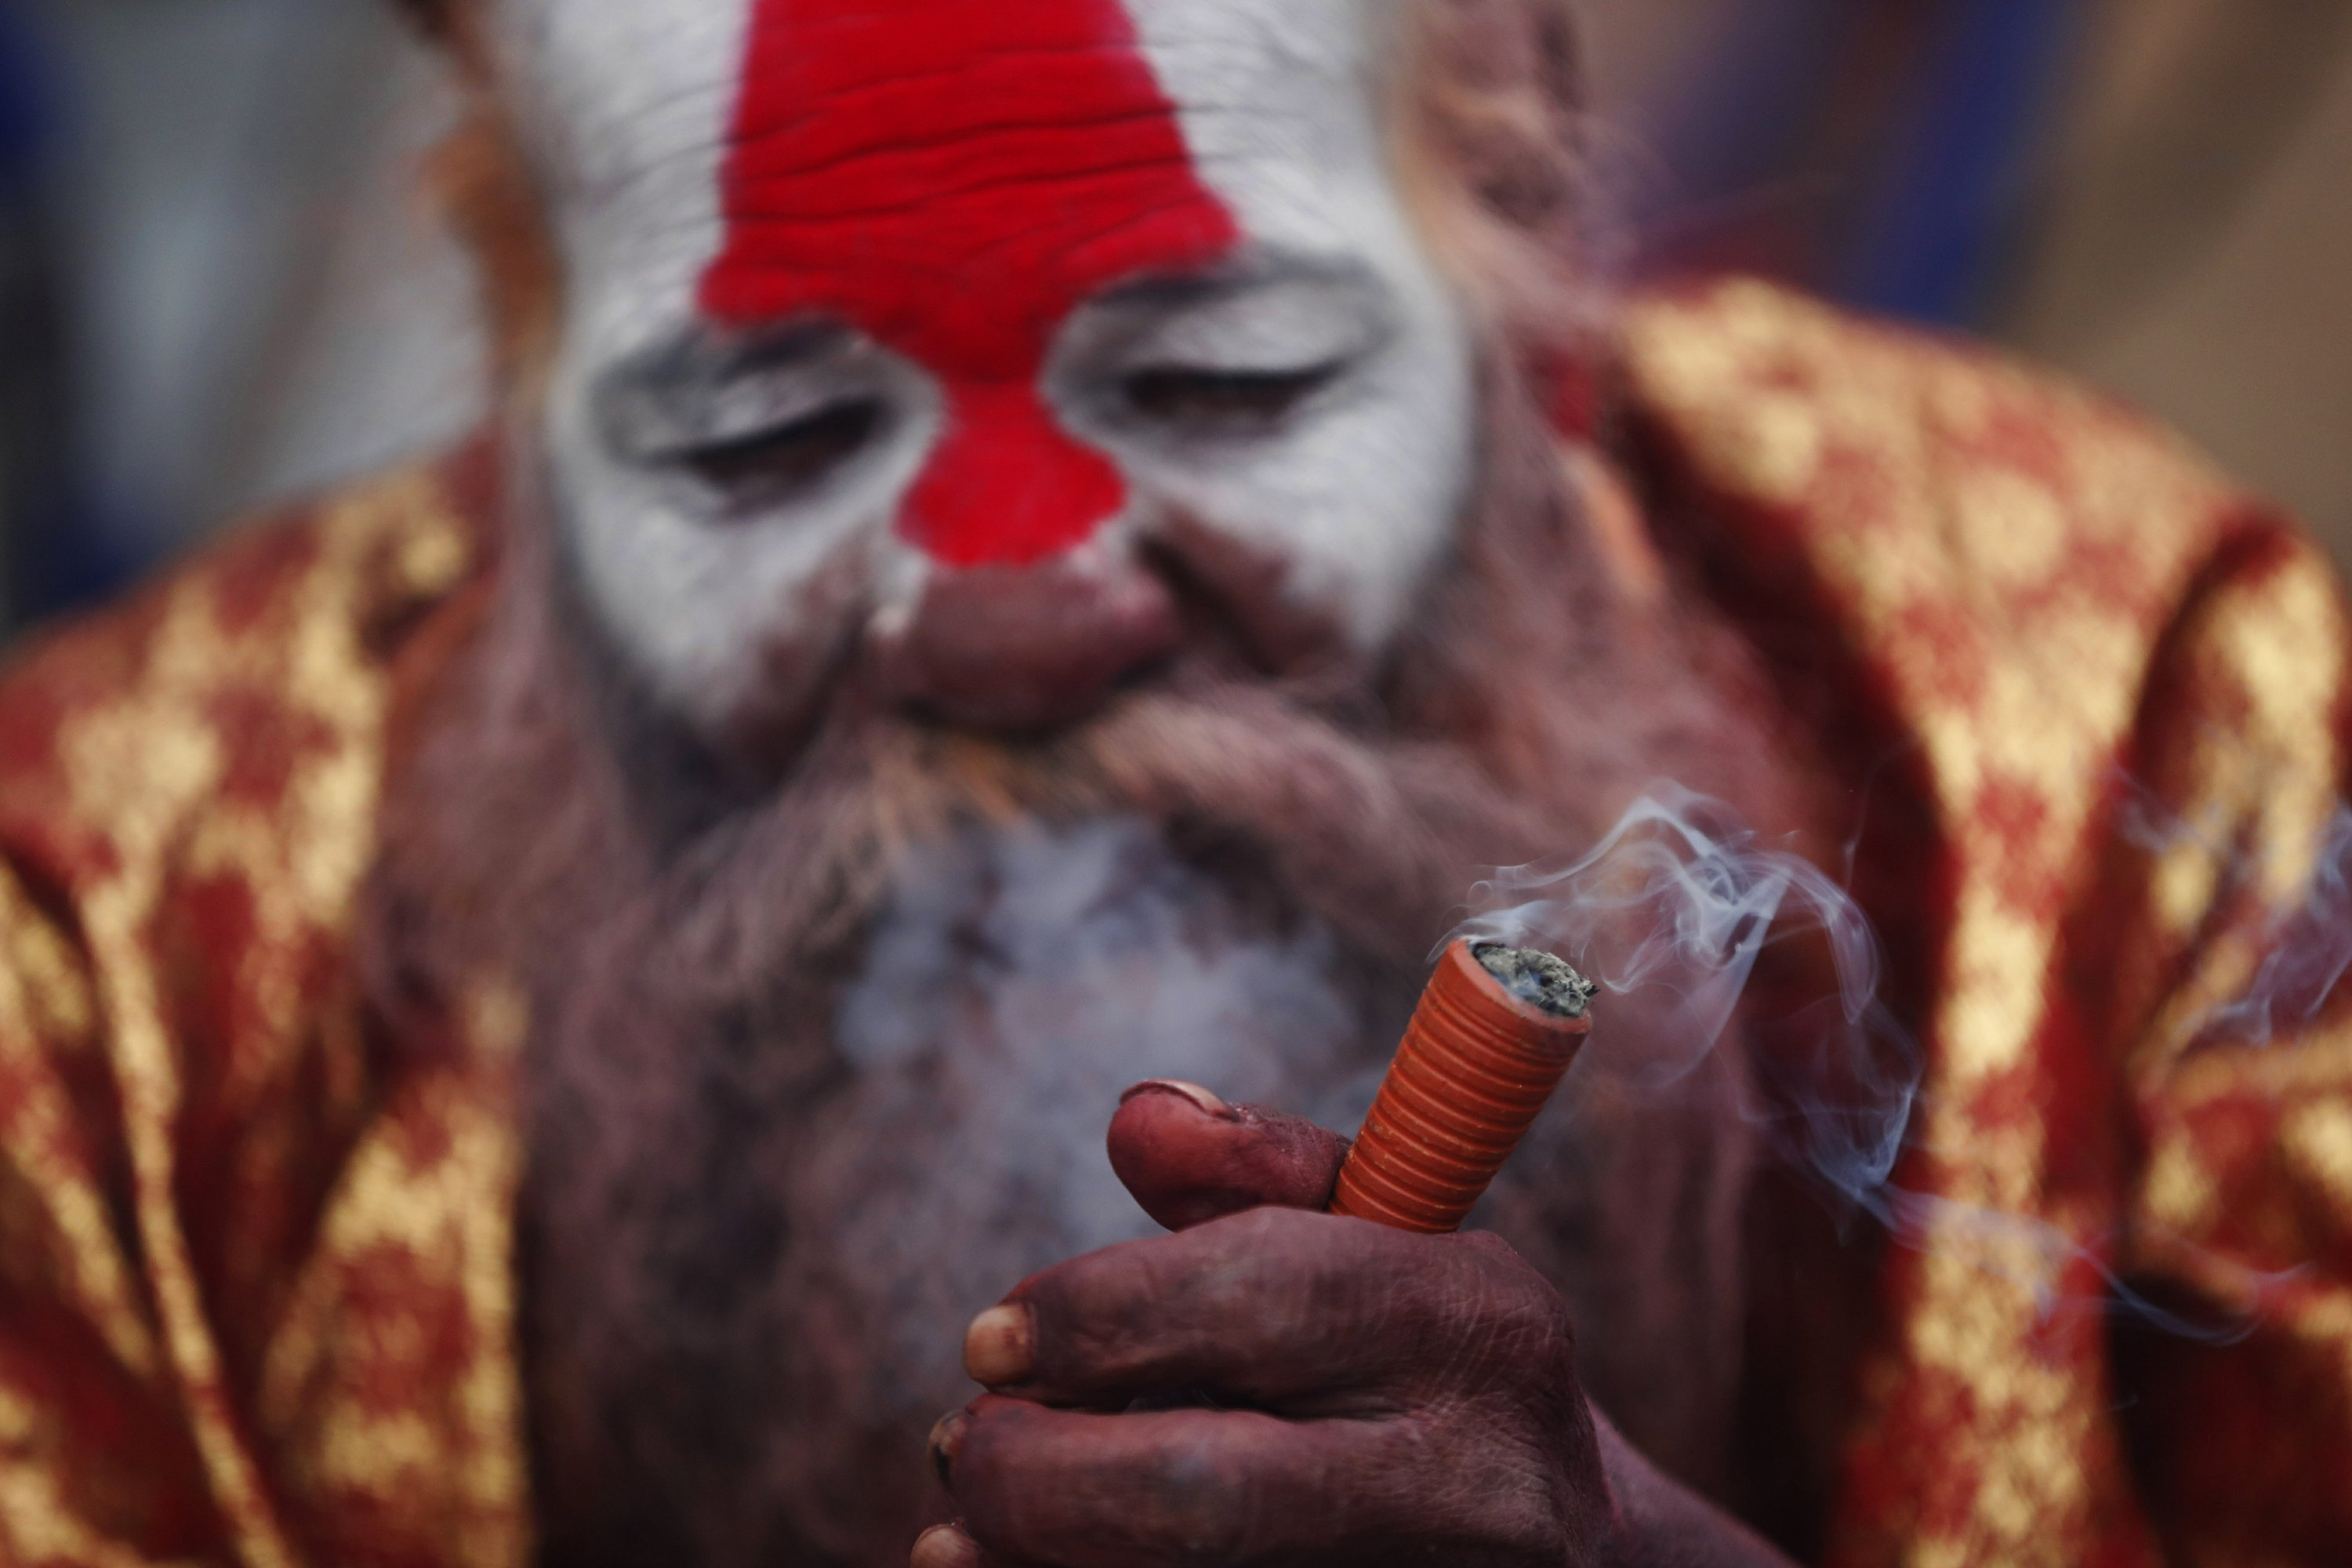 Thousands light up joints during Hindu festival in Nepal